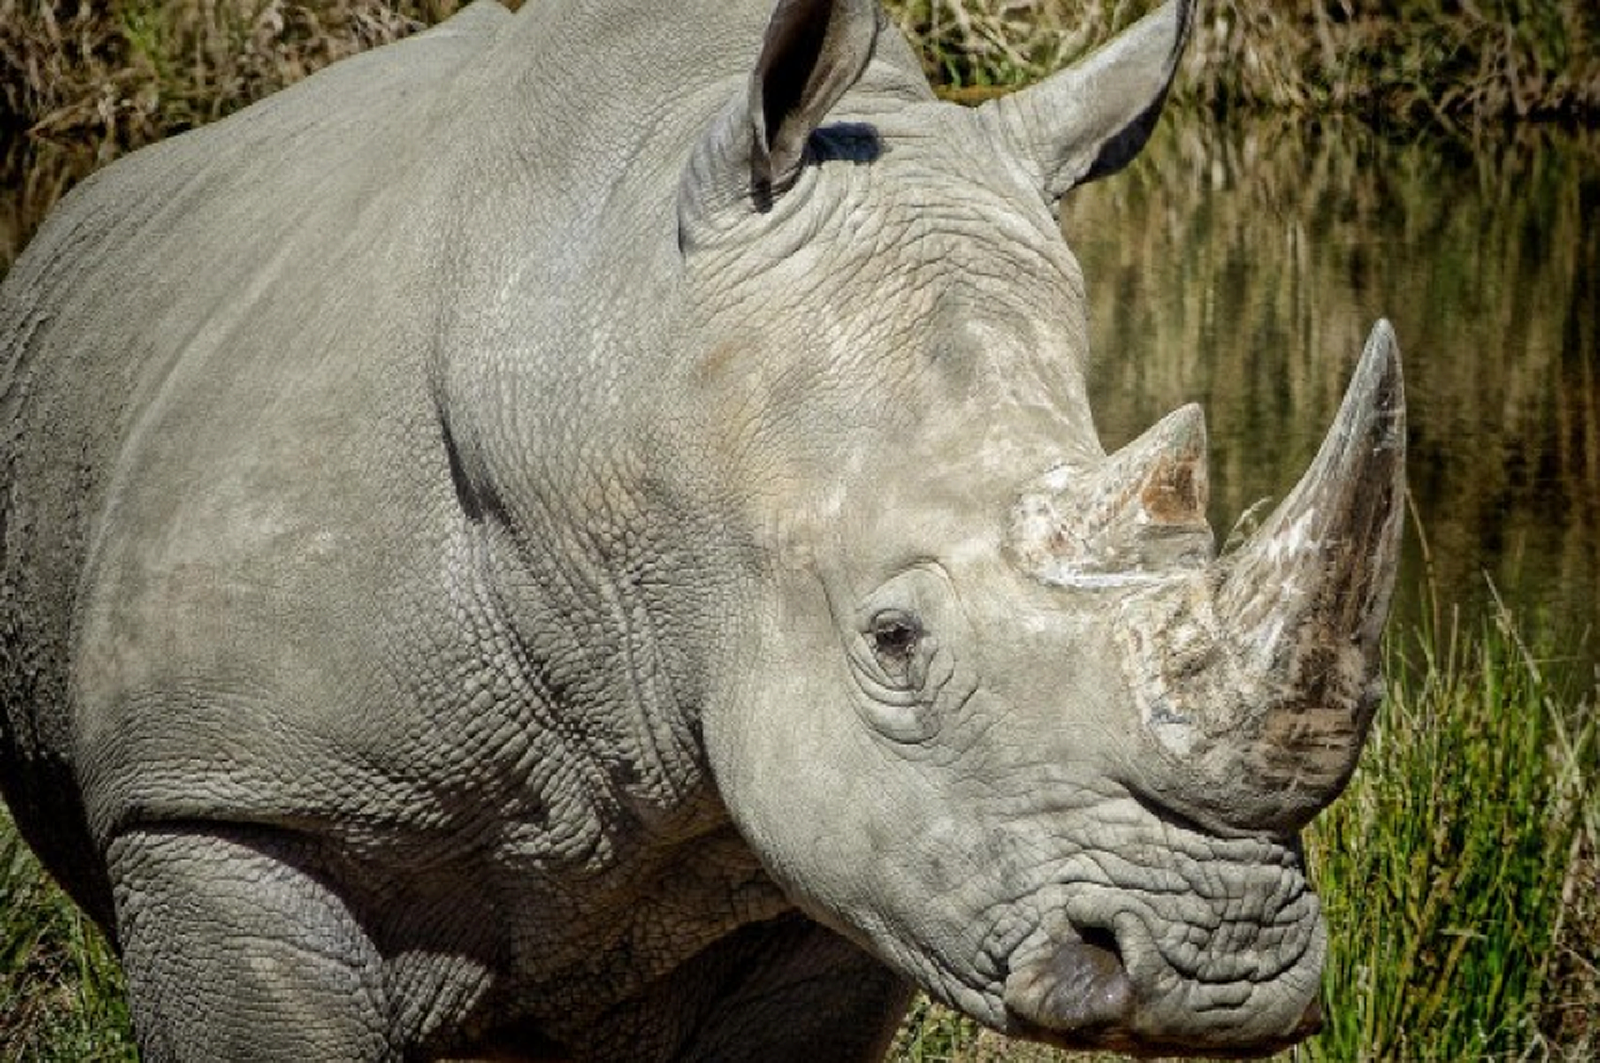 Photo by Mary Harrsch; Southern White Rhinocerous at Wildlife Safari near Winston Oregon